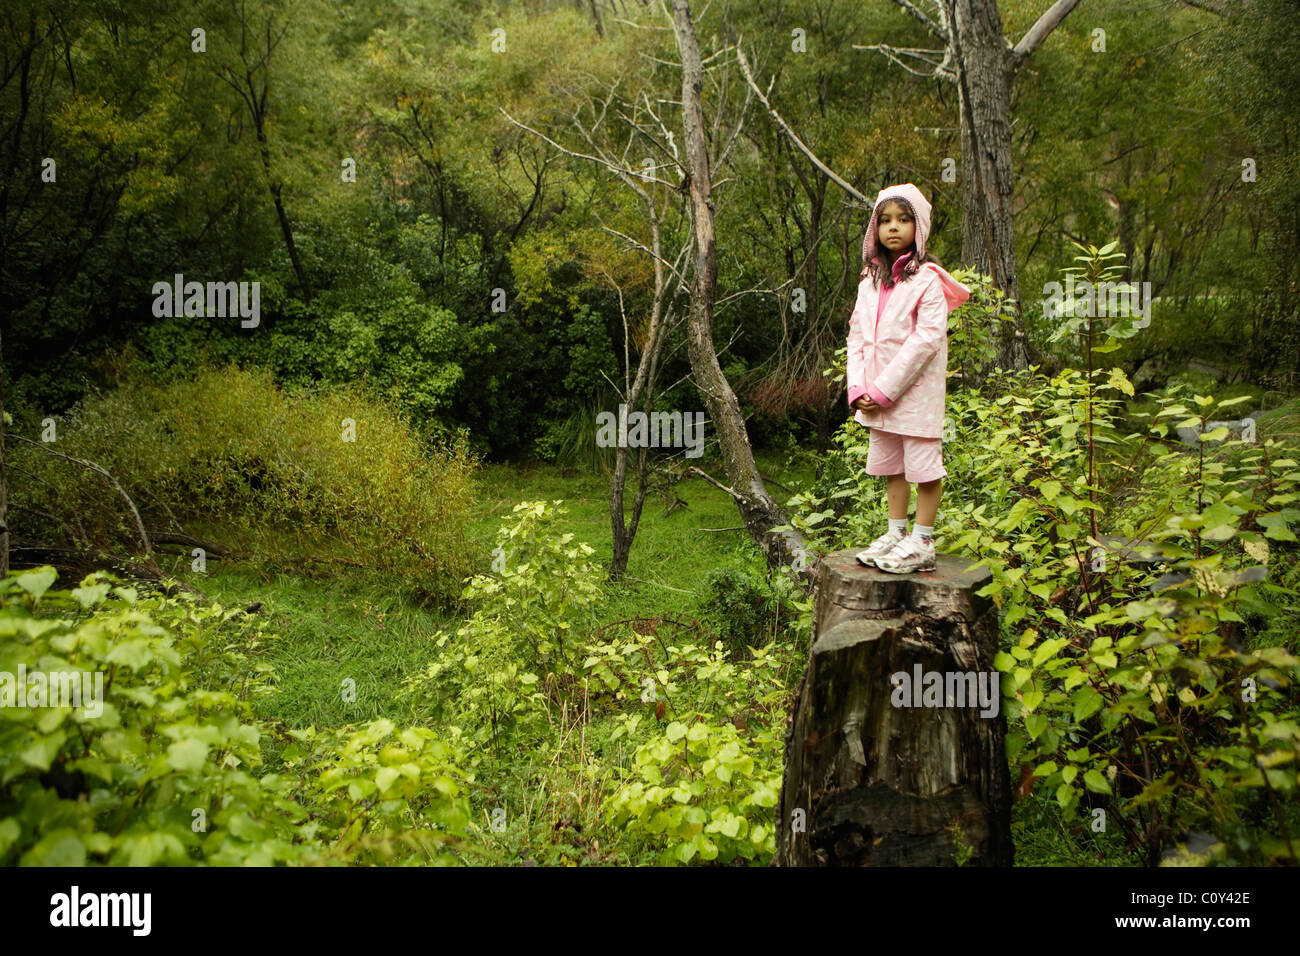 Six year old girl in pink stands on tree stump in woodland, New Zealand - Stock Image